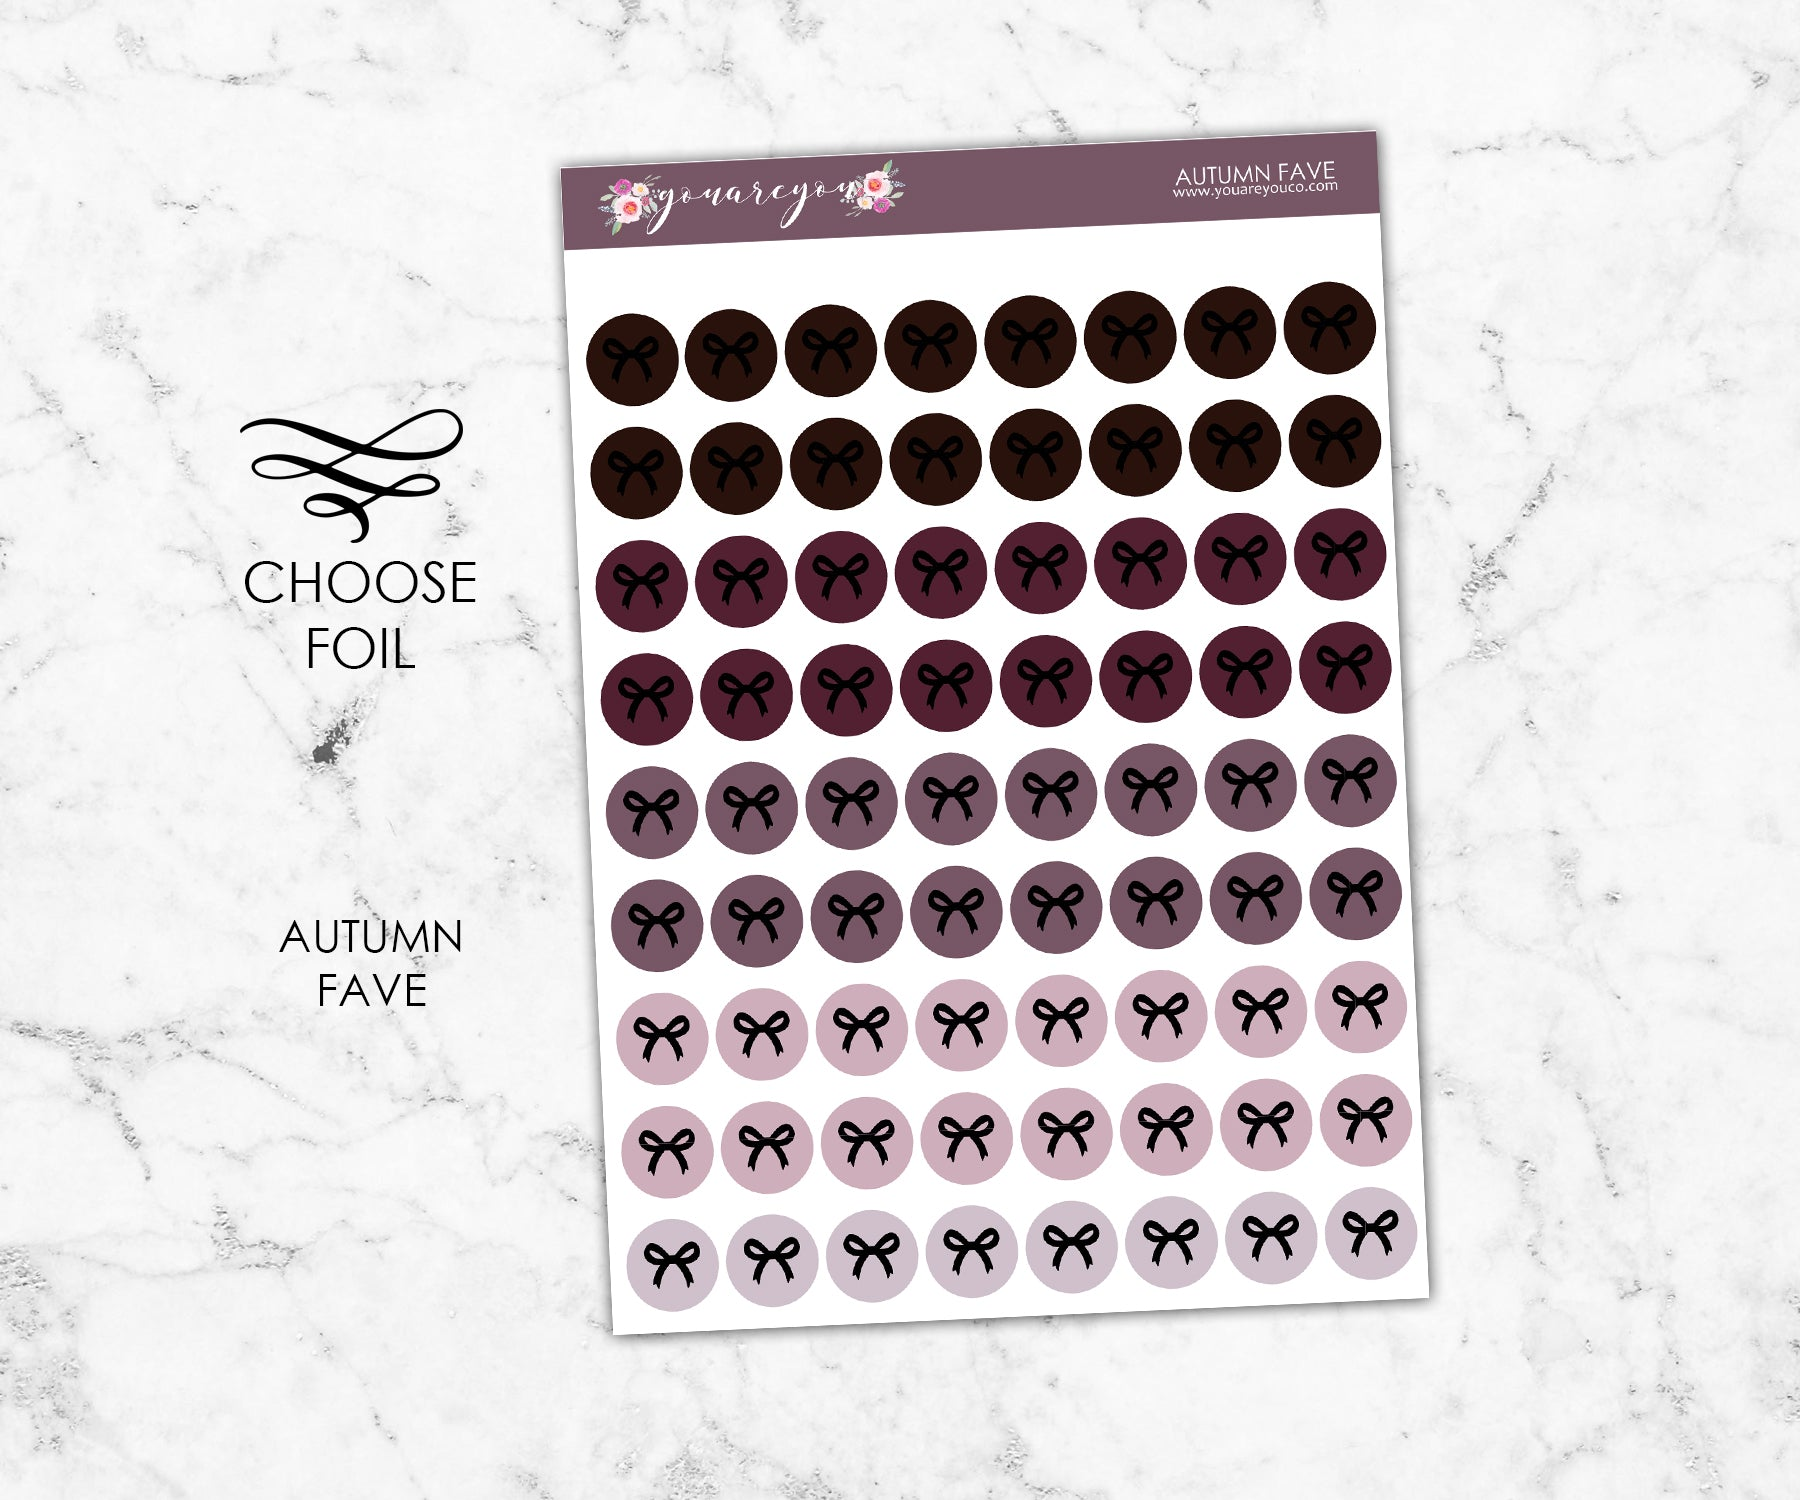 FOIL Autumn Fave Bow round icon stickers